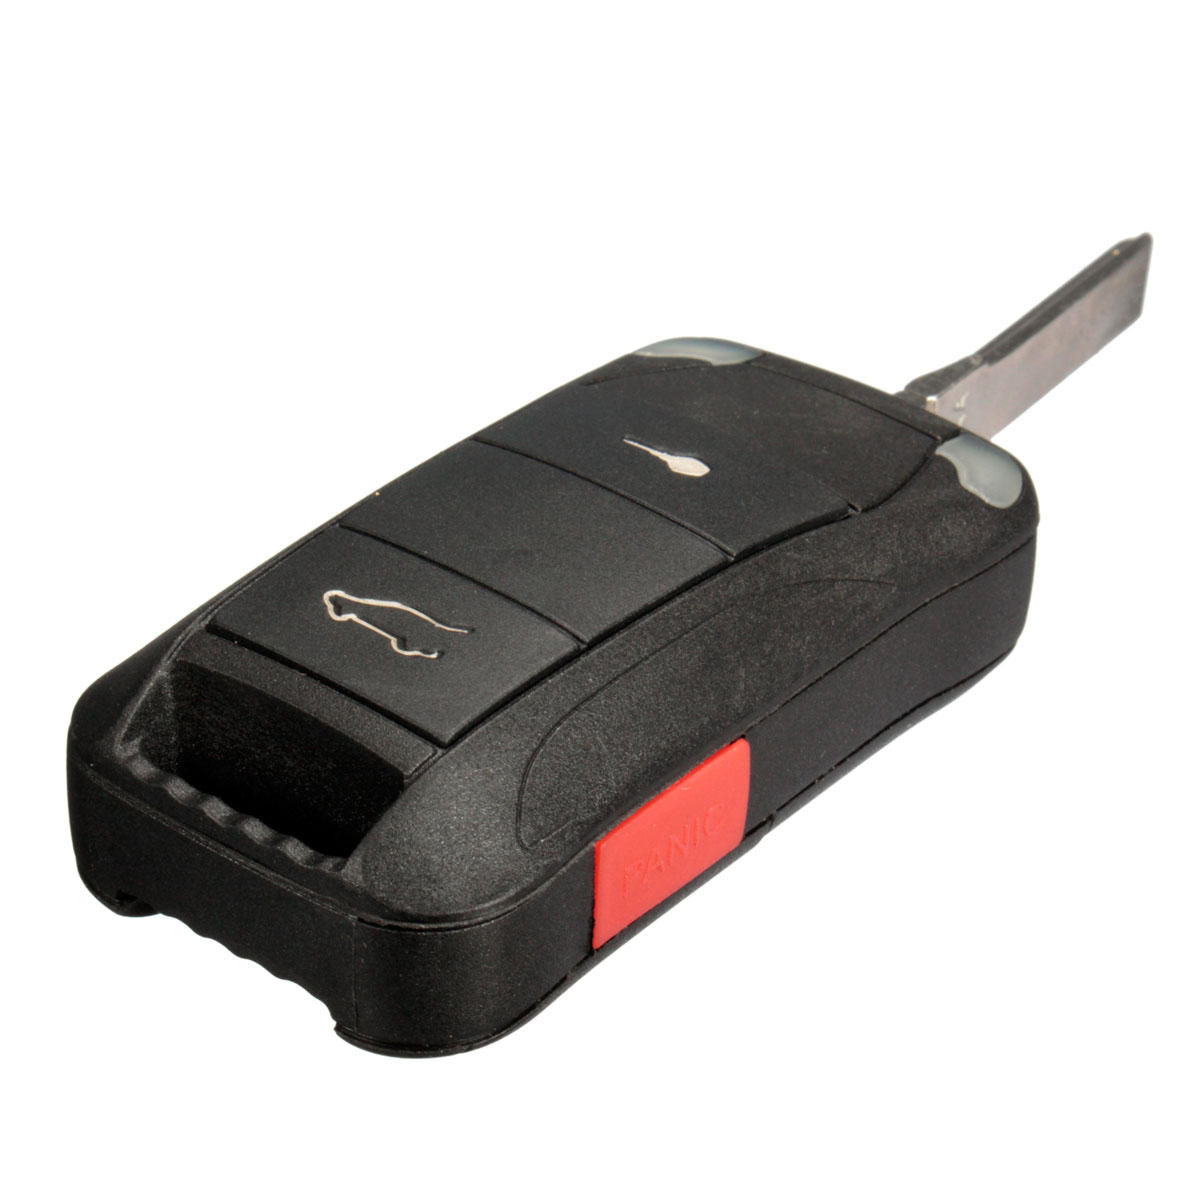 2 On Panic Remote Key Fob Case Shell With Blade For Porsche Cayenne 03 11 Cod